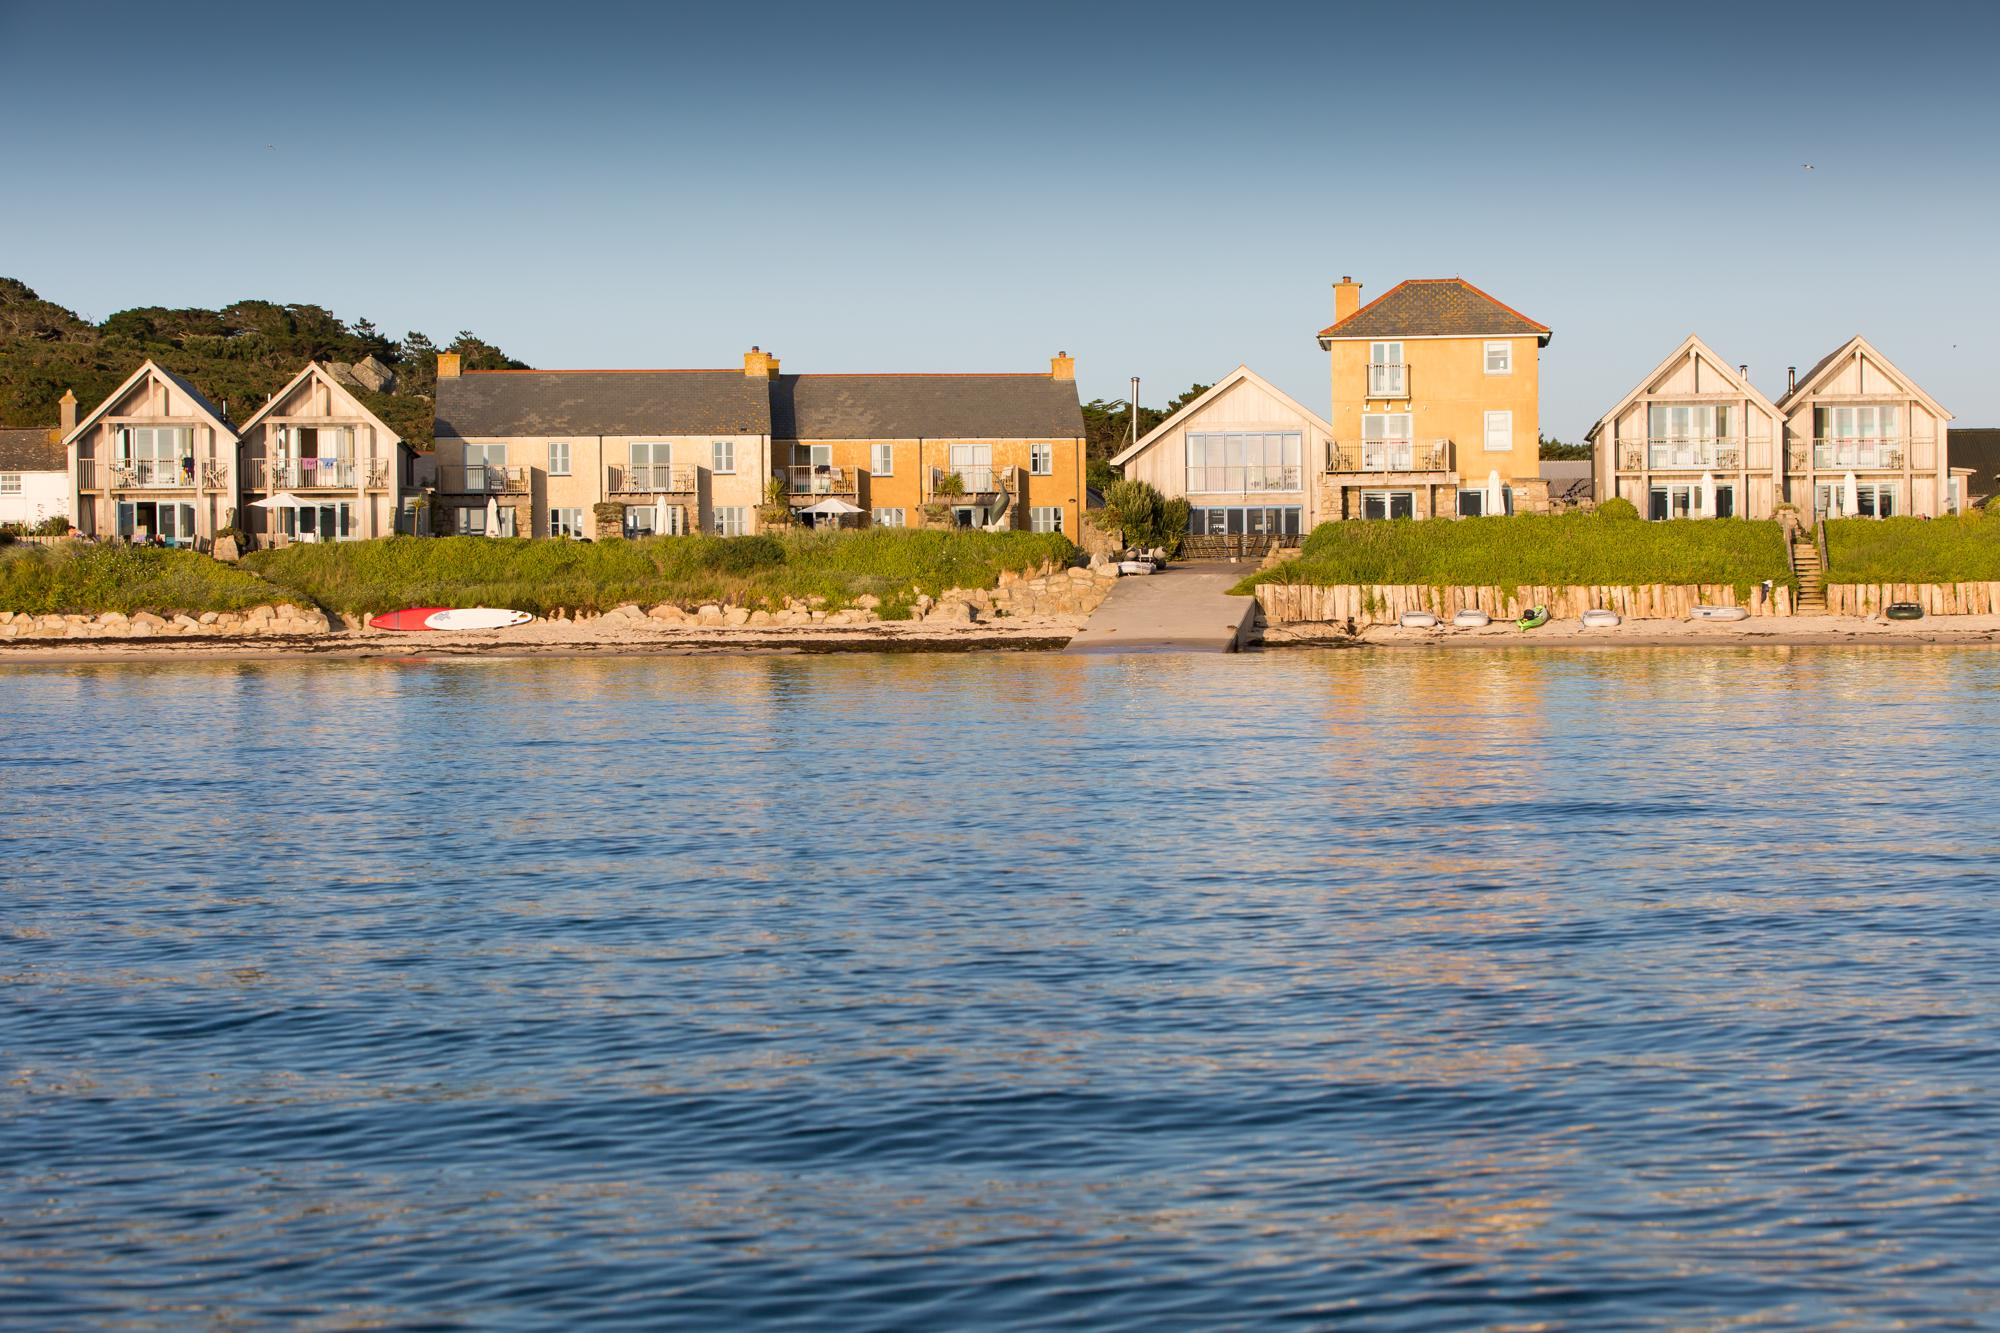 Self-Catering in Isles of Scilly holidays at Cool Places